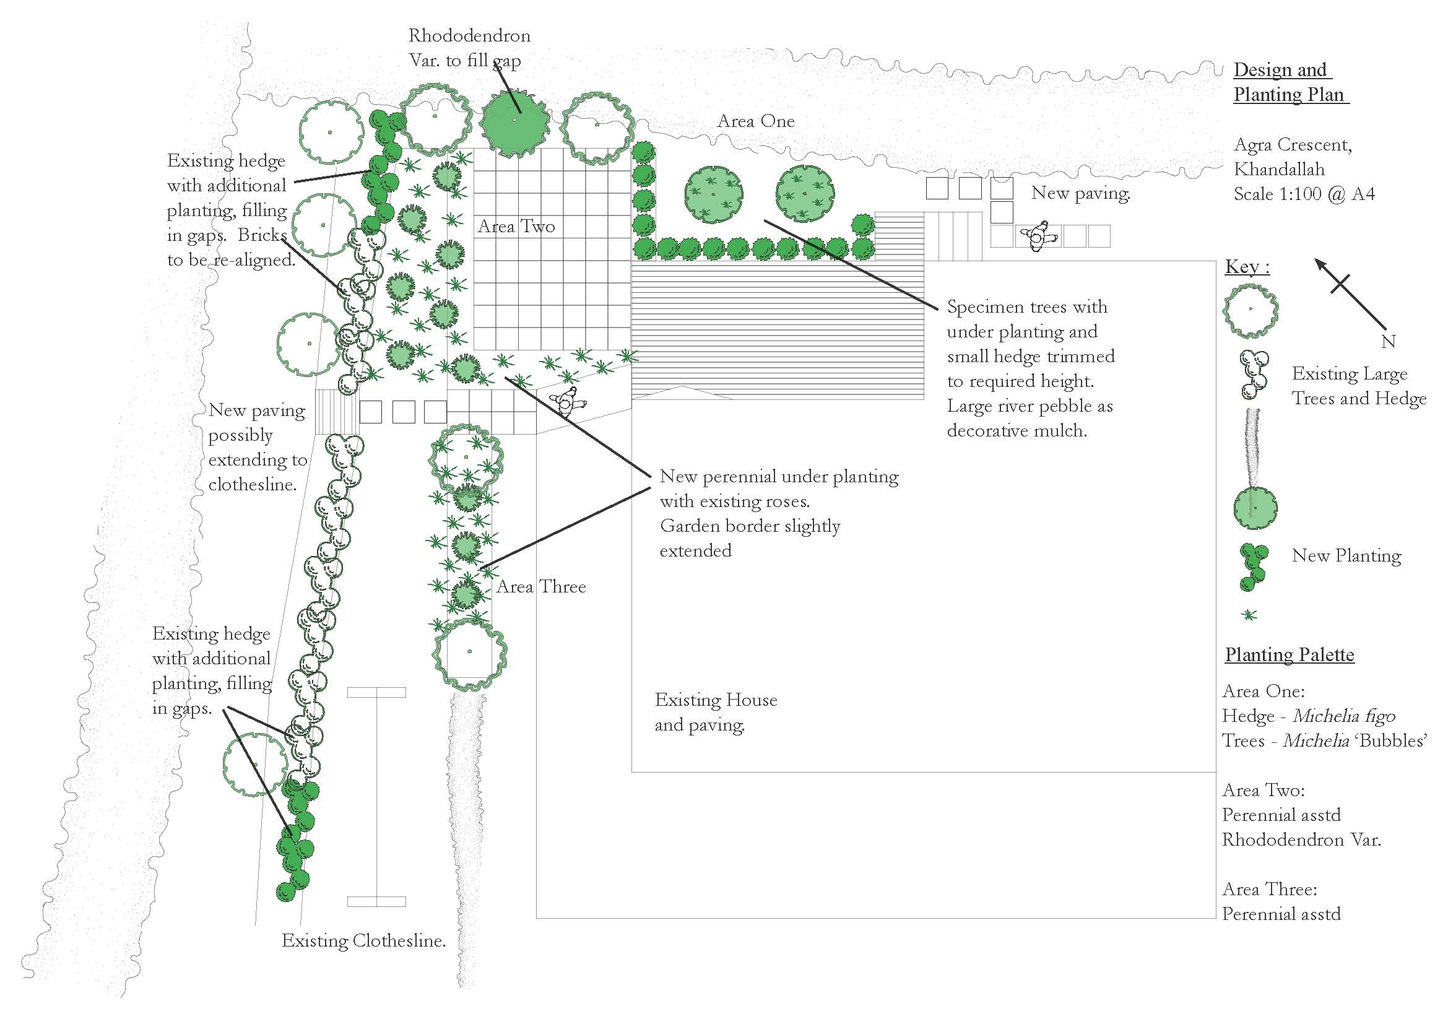 Dlandarch, Landscape Architect services, Hastings, Hawkes